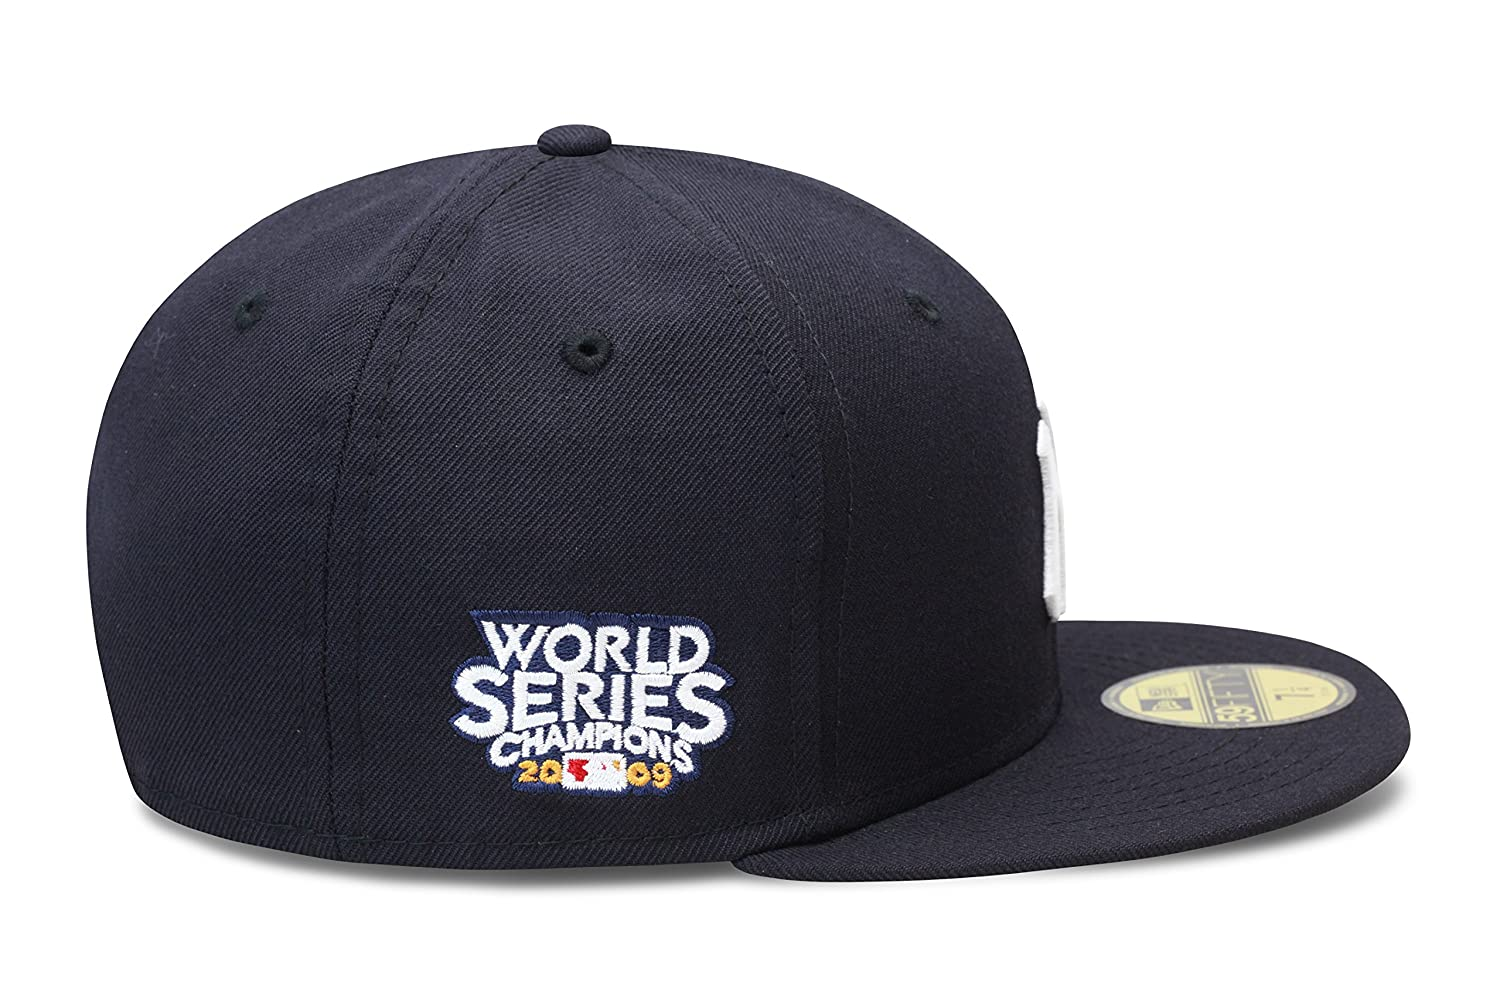 05ec9e65 New Era New York Yankees Fitted Hat Cap 2009 World Series Patch at ...